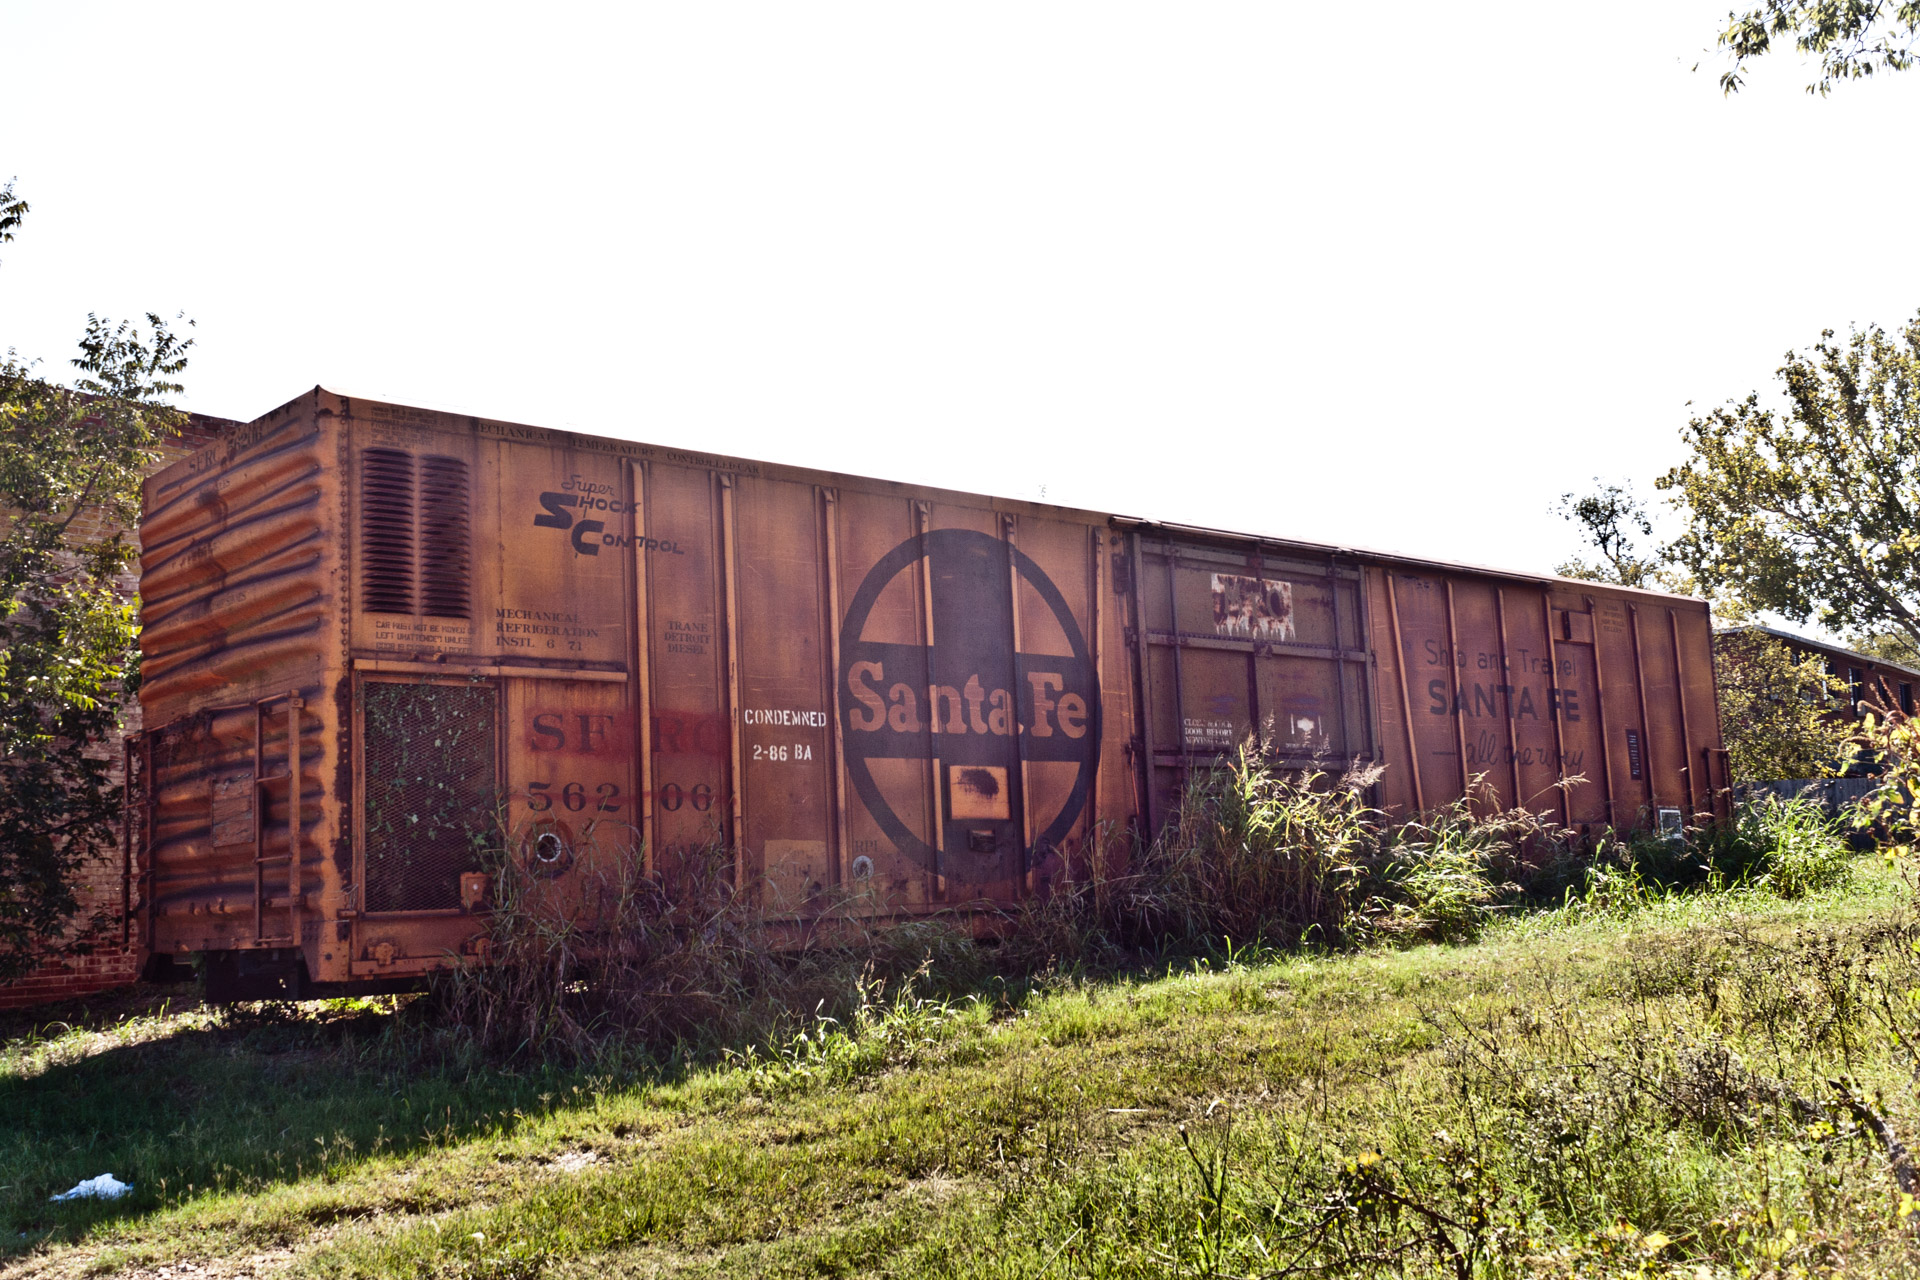 A Condemned Railroad Car